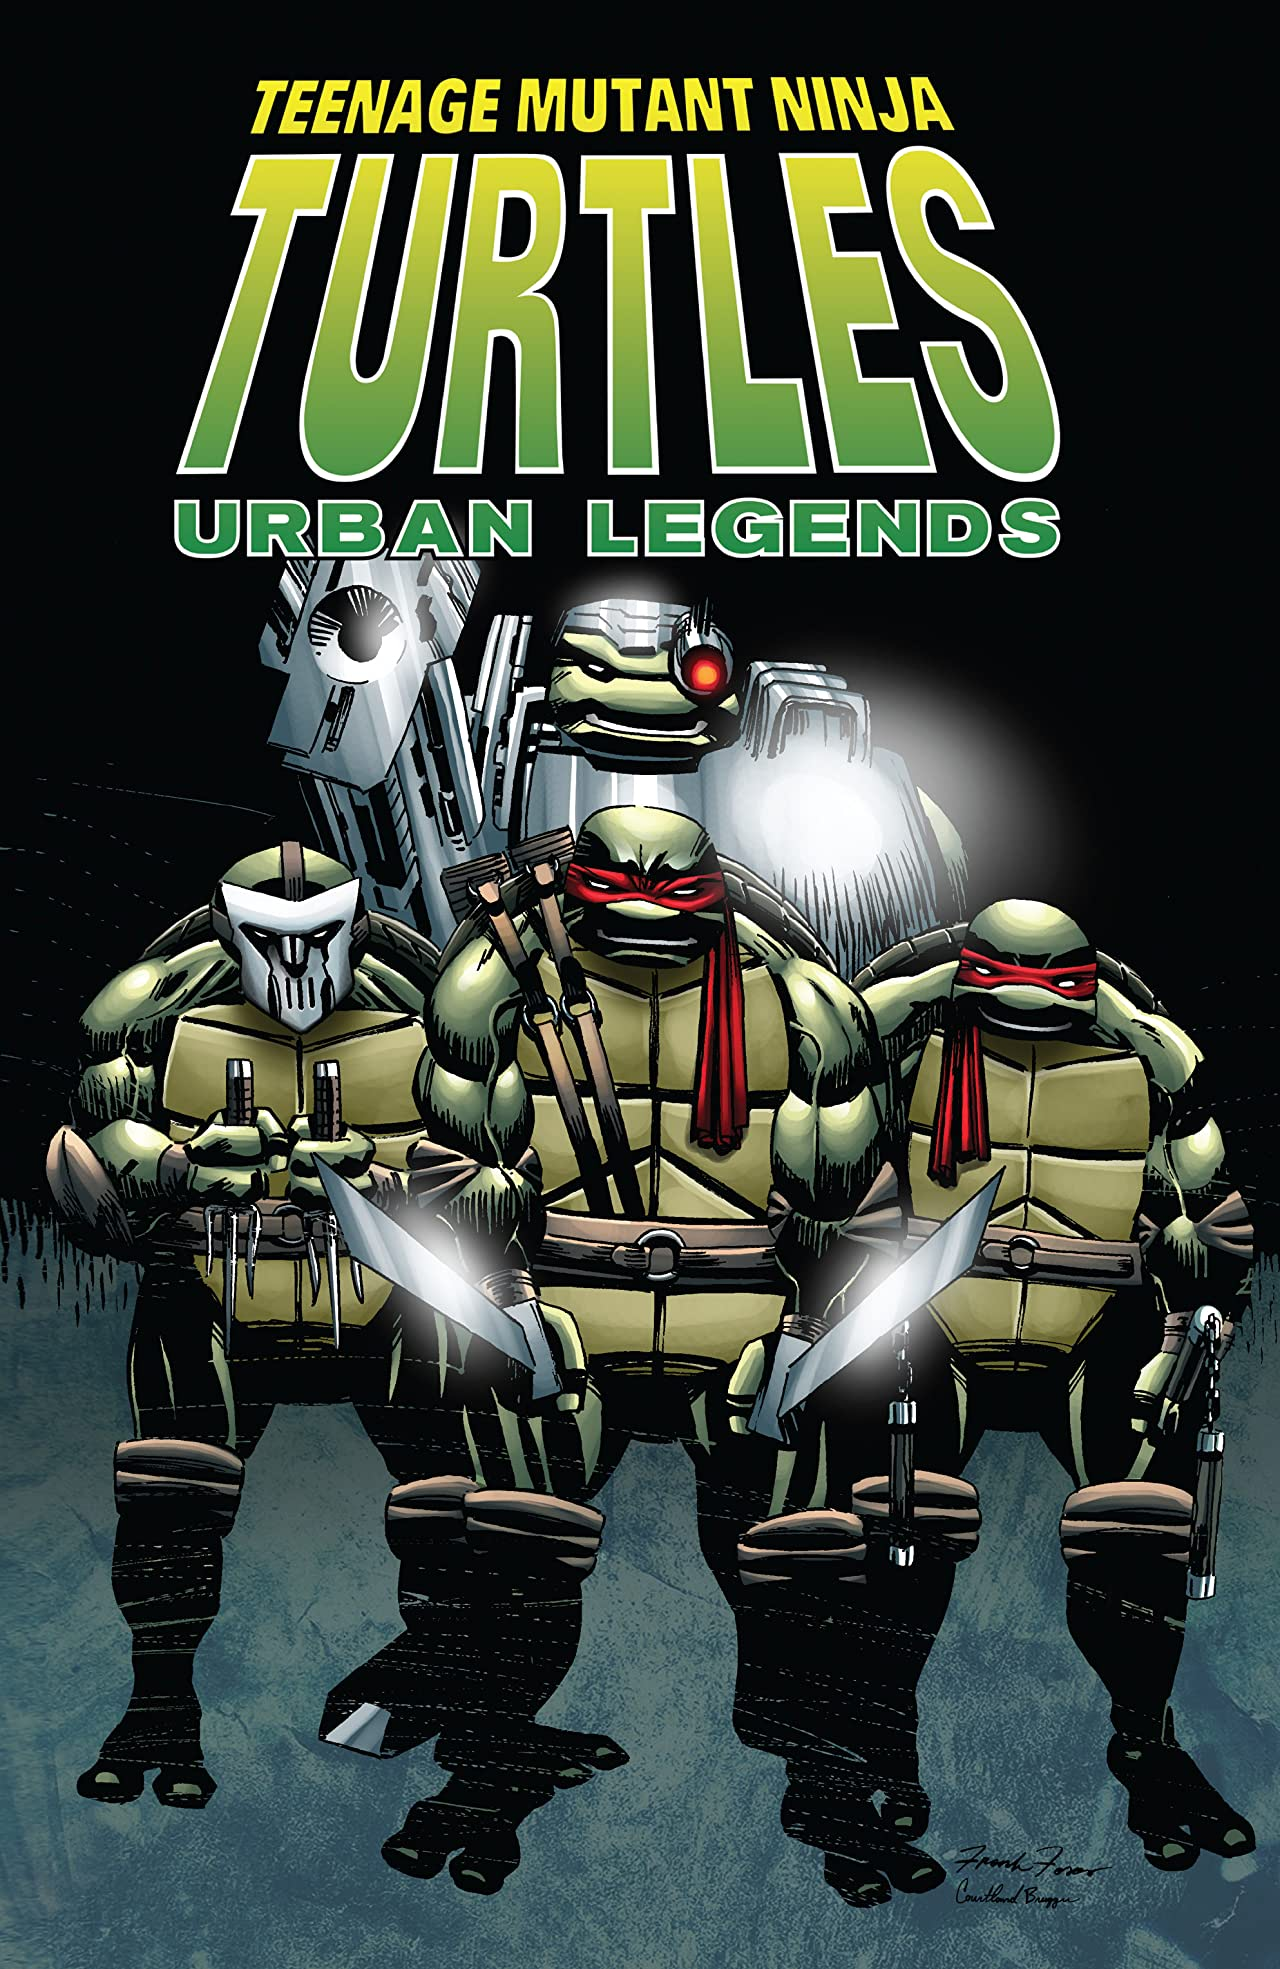 Teenage Mutant Ninja Turtles: Urban Legends Vol. 1